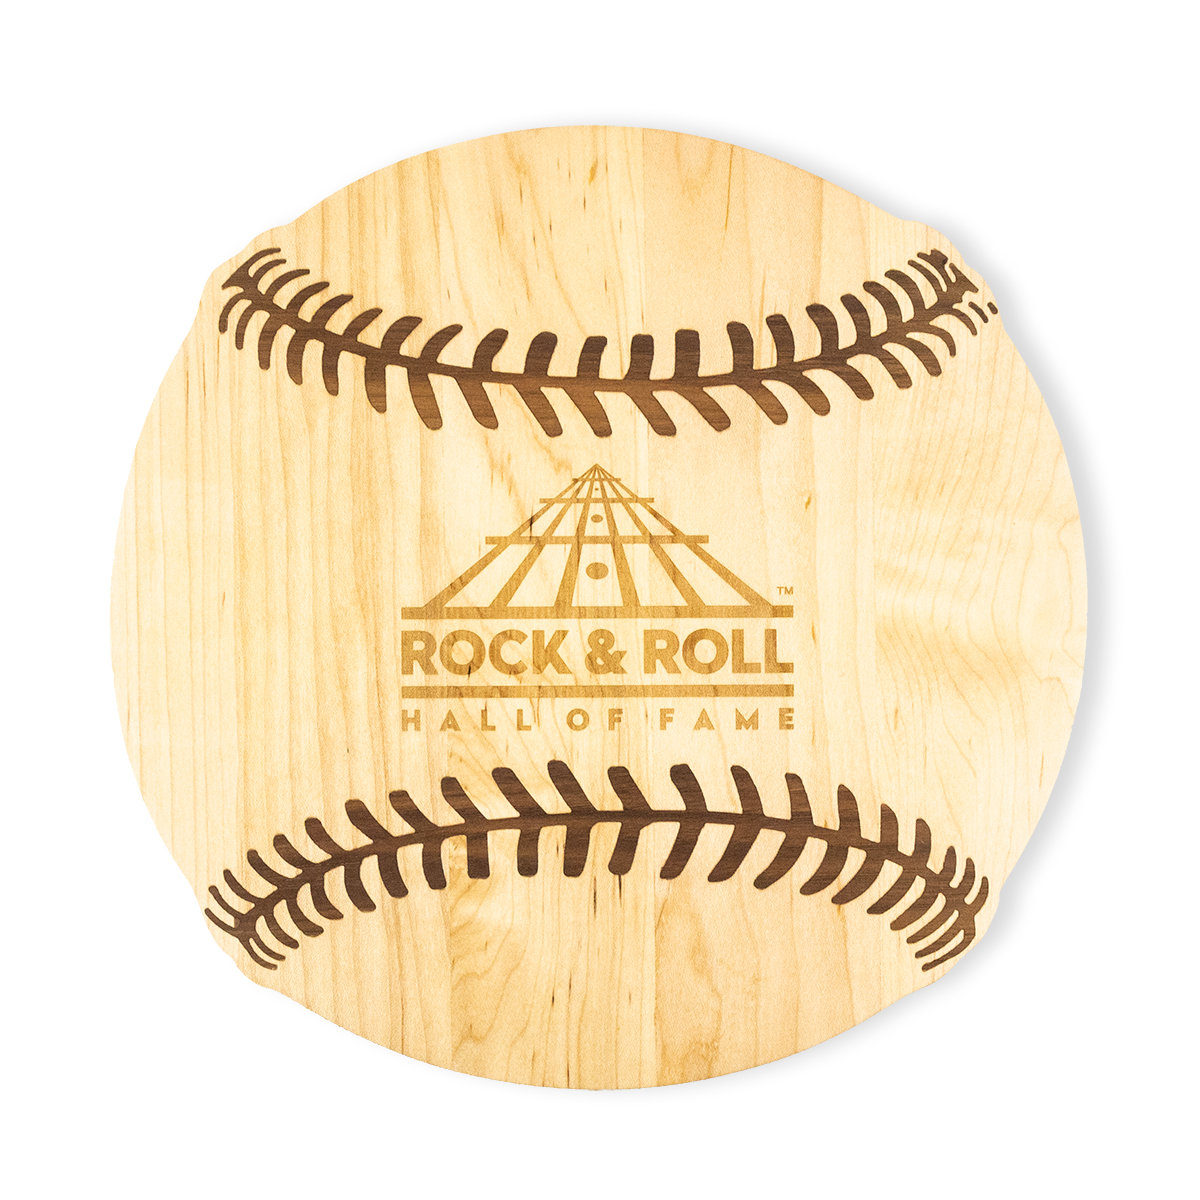 Etched Baseball Wooden Cutting Board